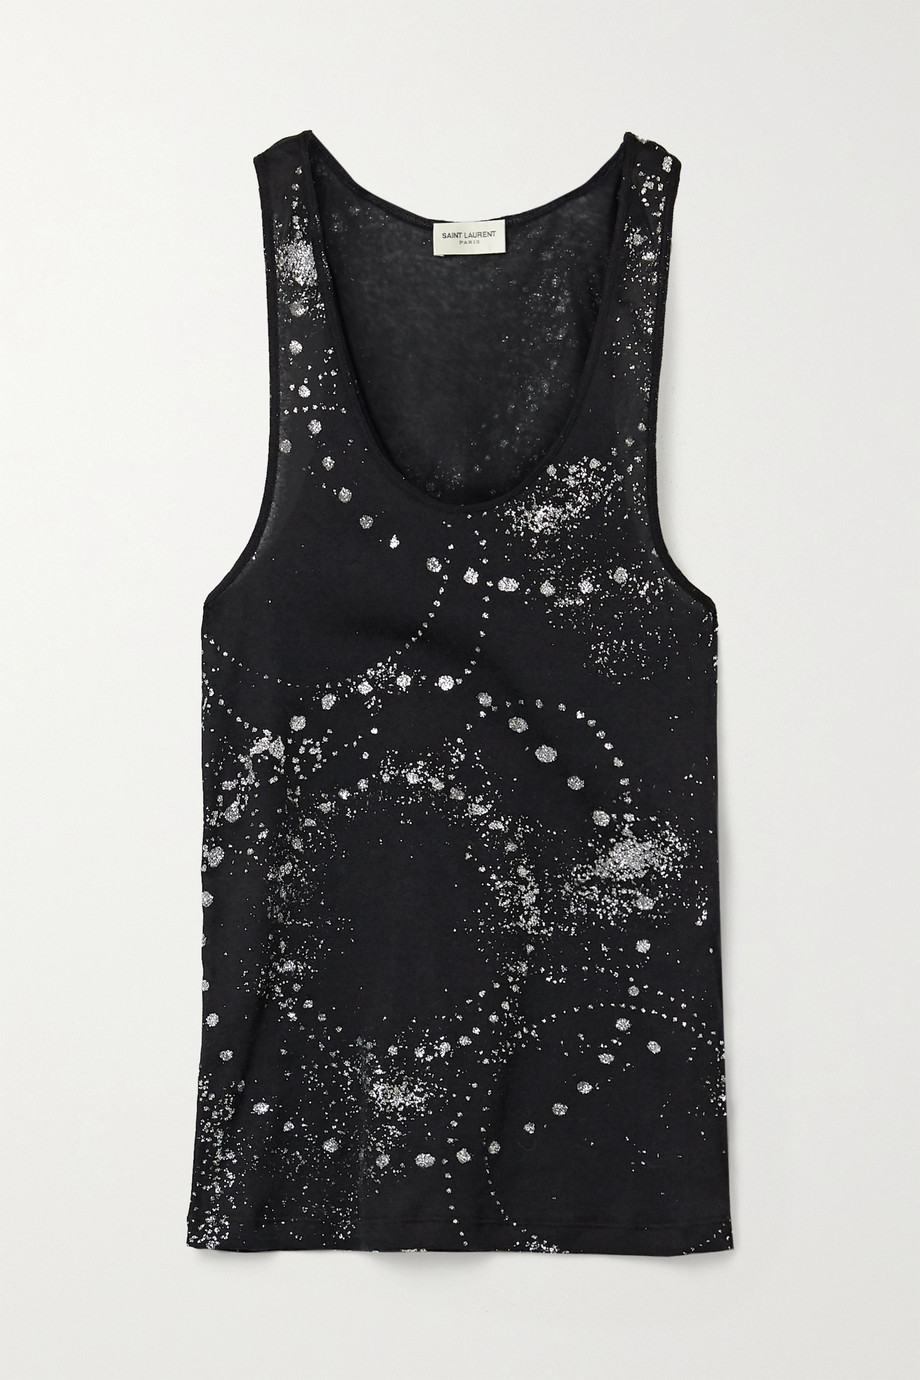 SAINT LAURENT Glittered cotton-jersey tank